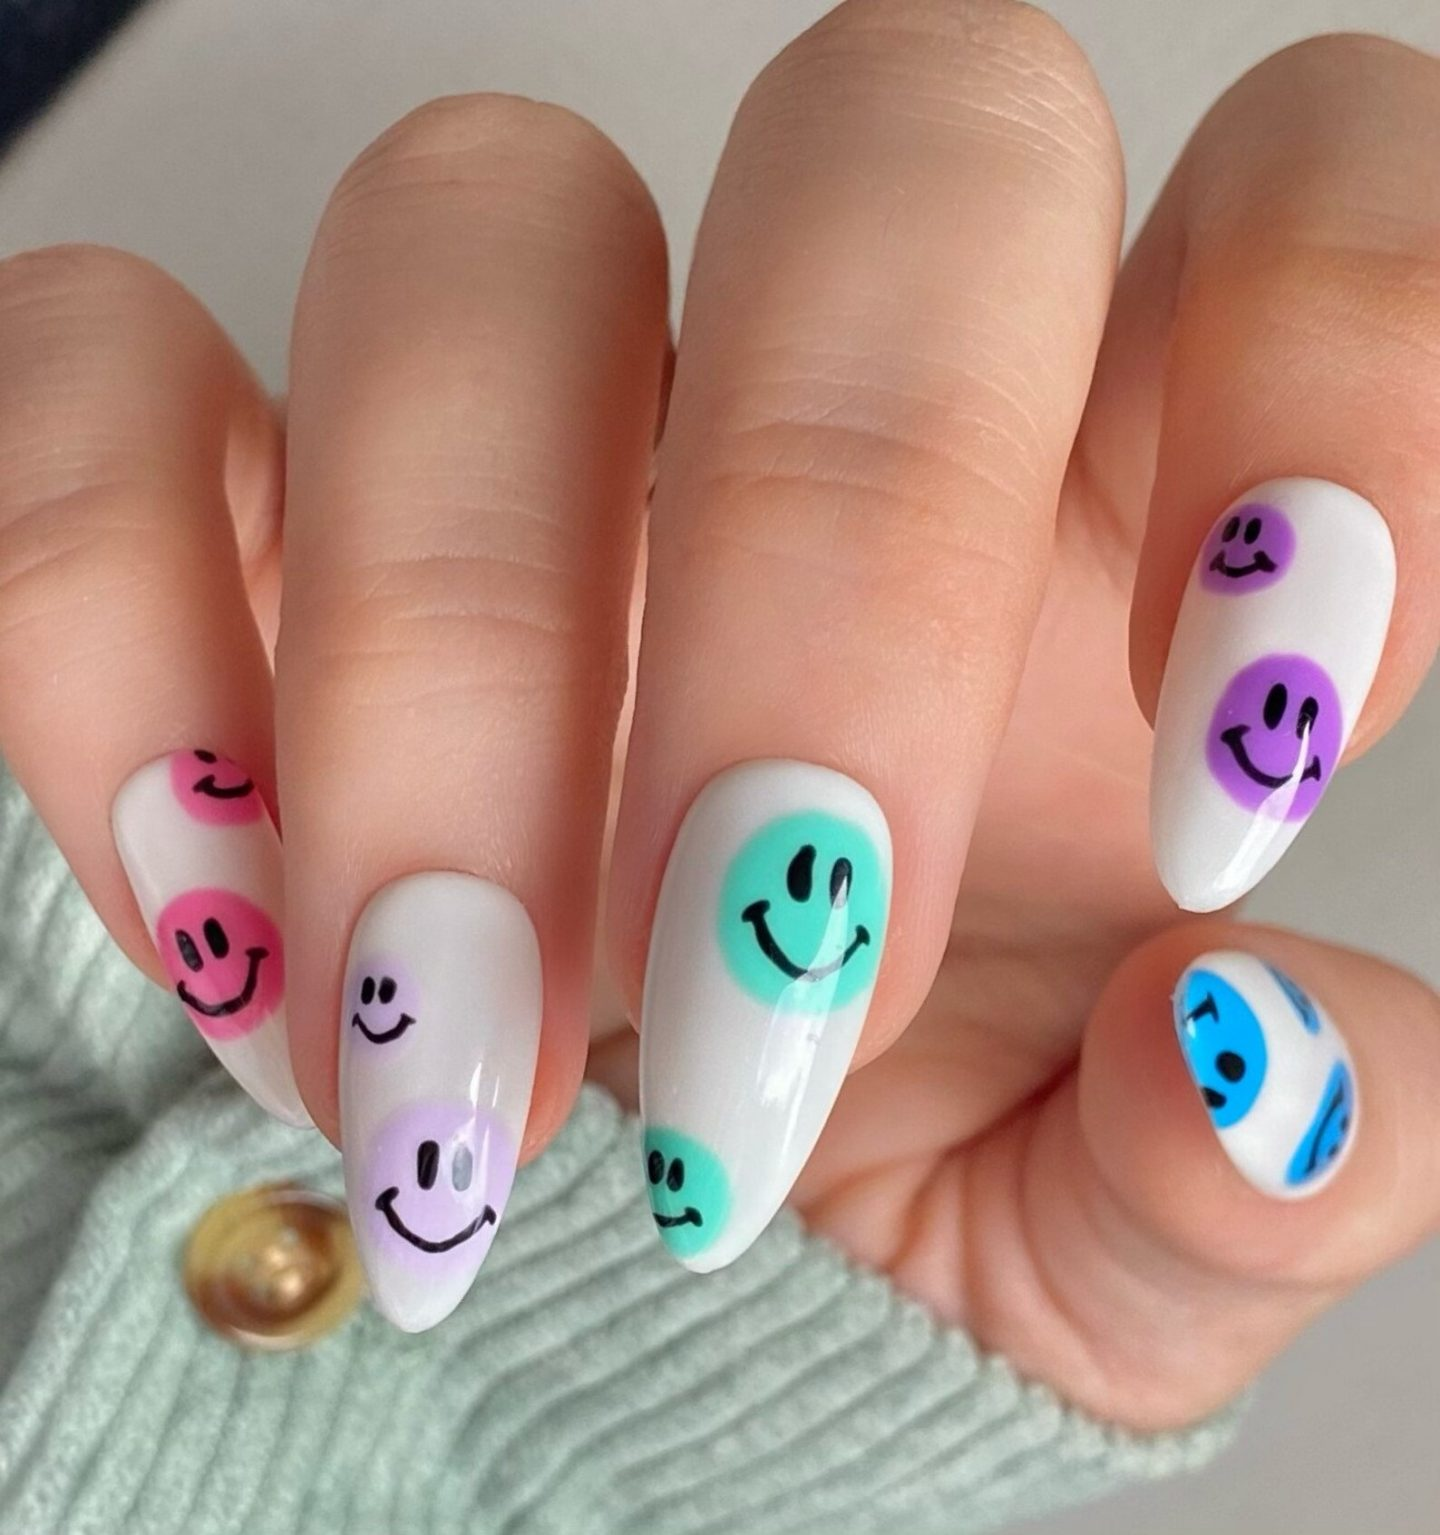 White nails with colorful emojis